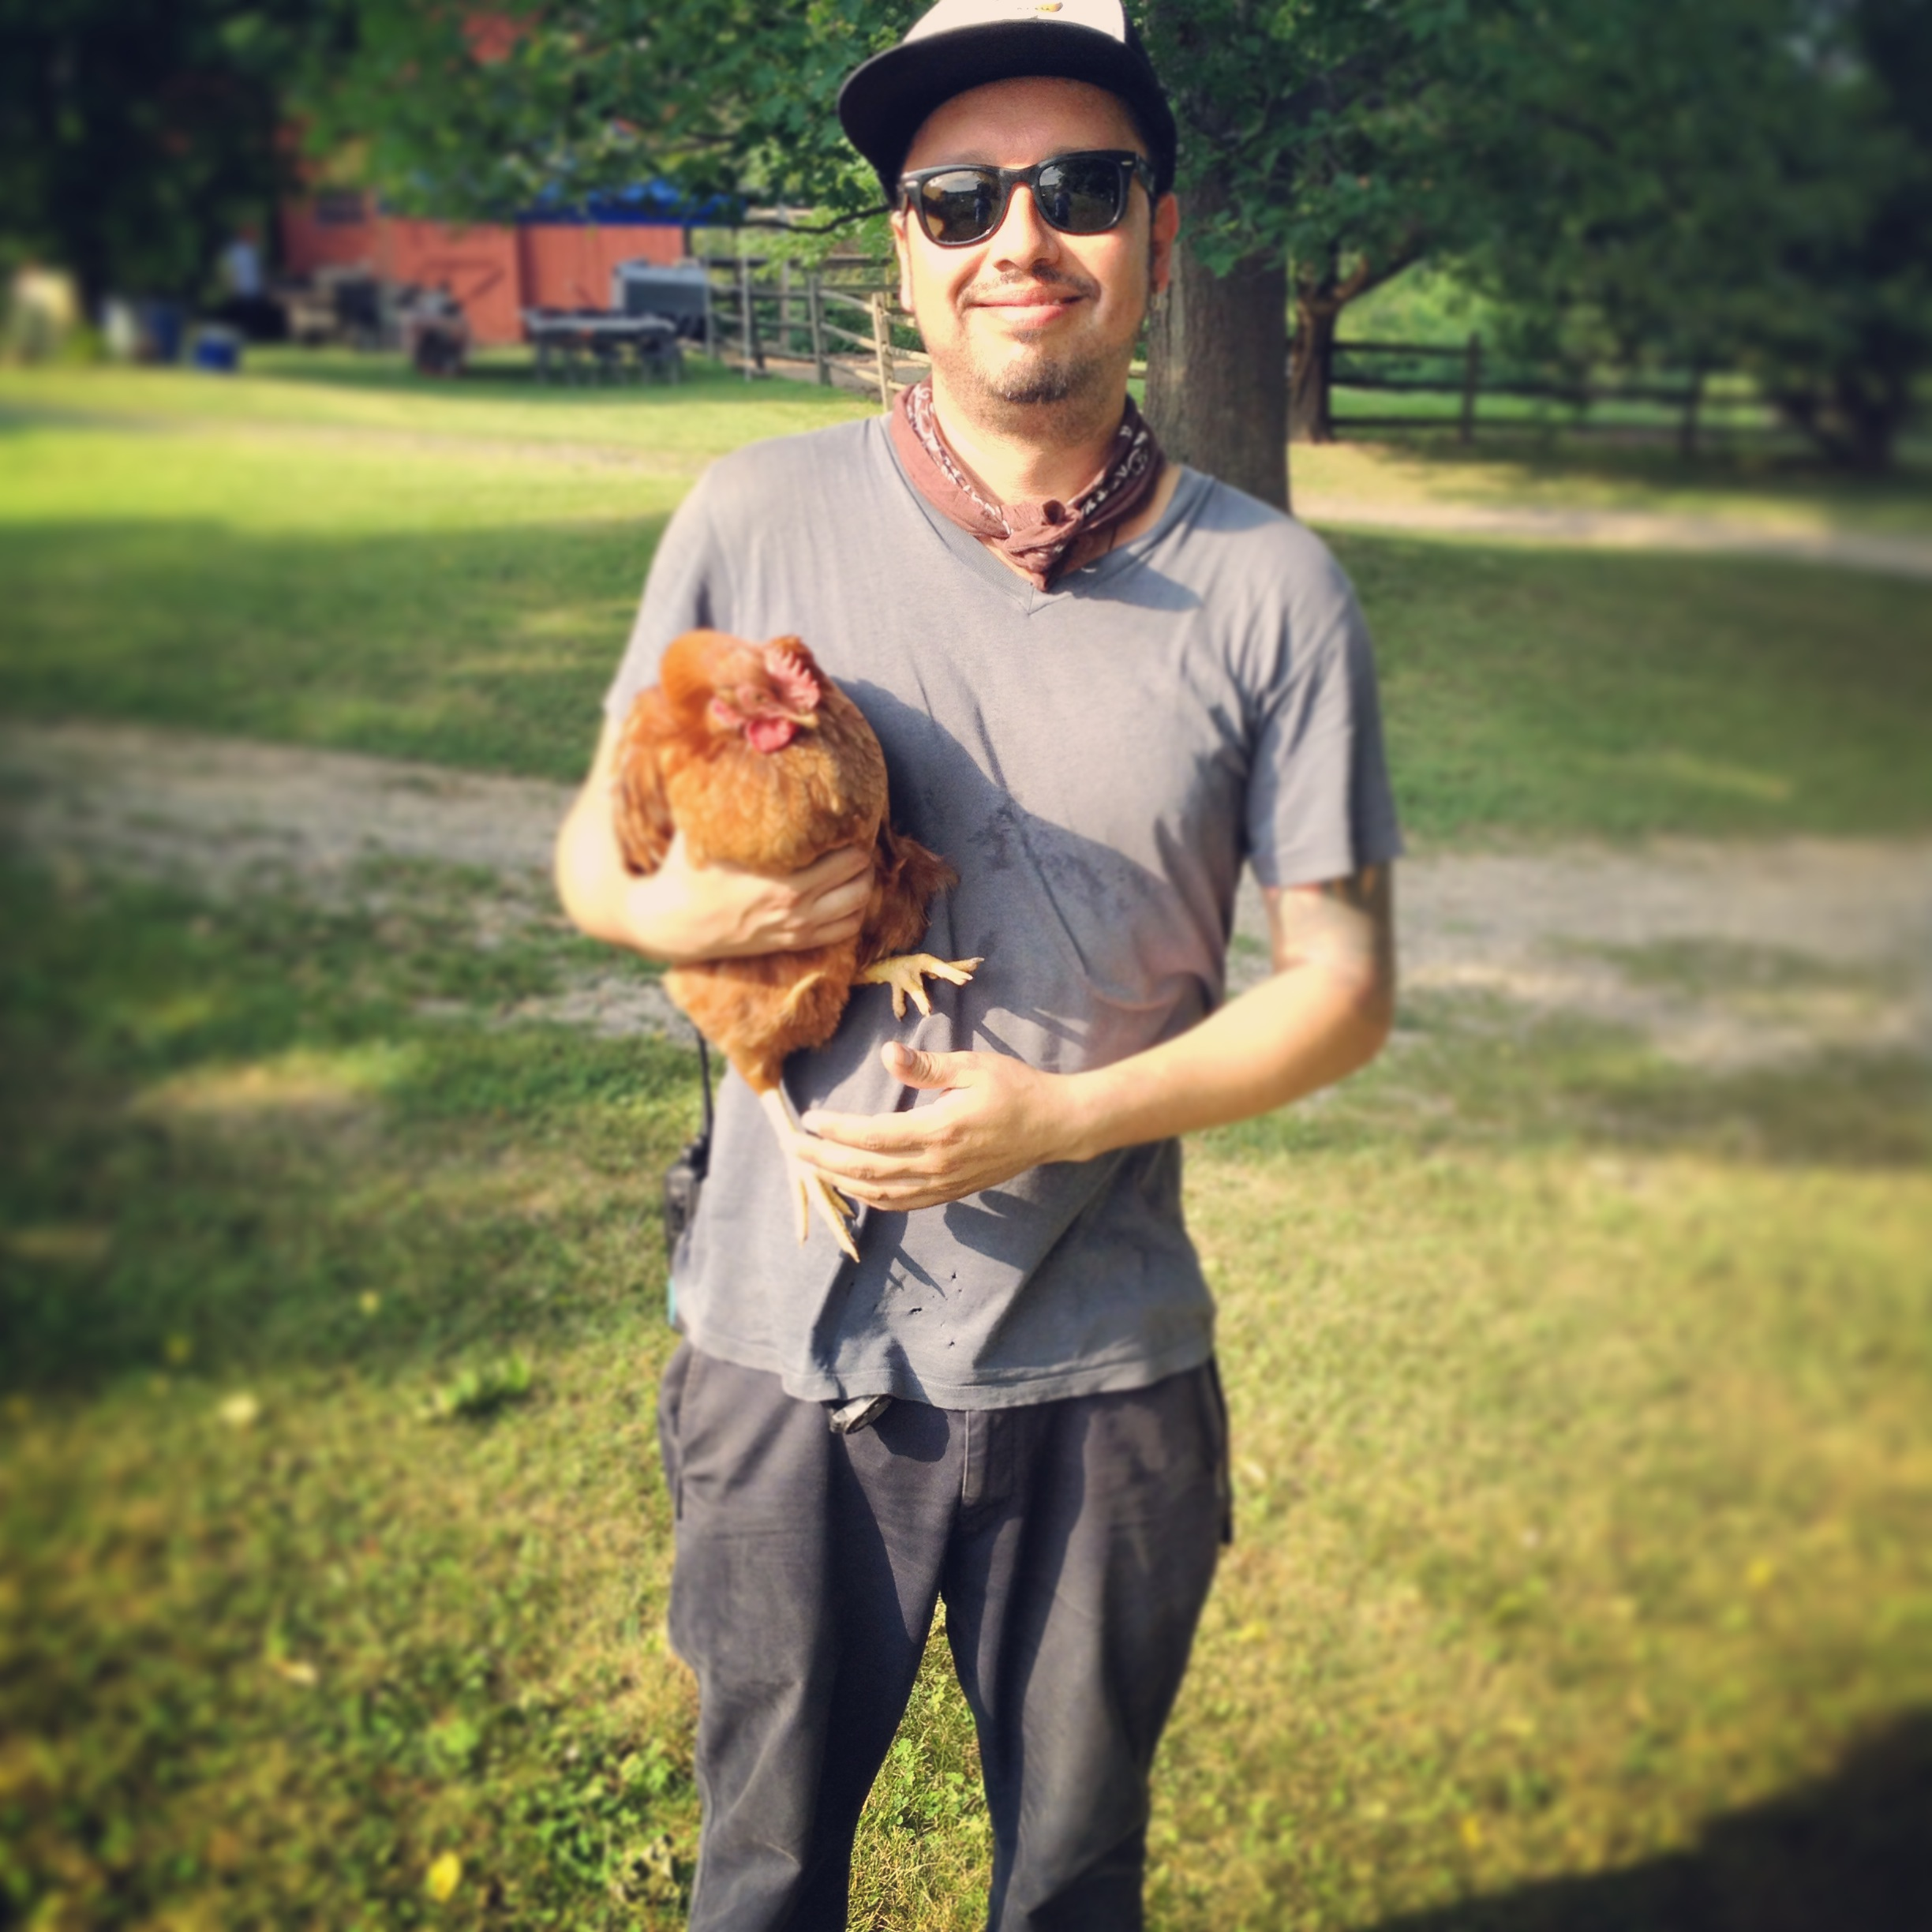 chicken on location county fair productions home photo and video environmentally conscious